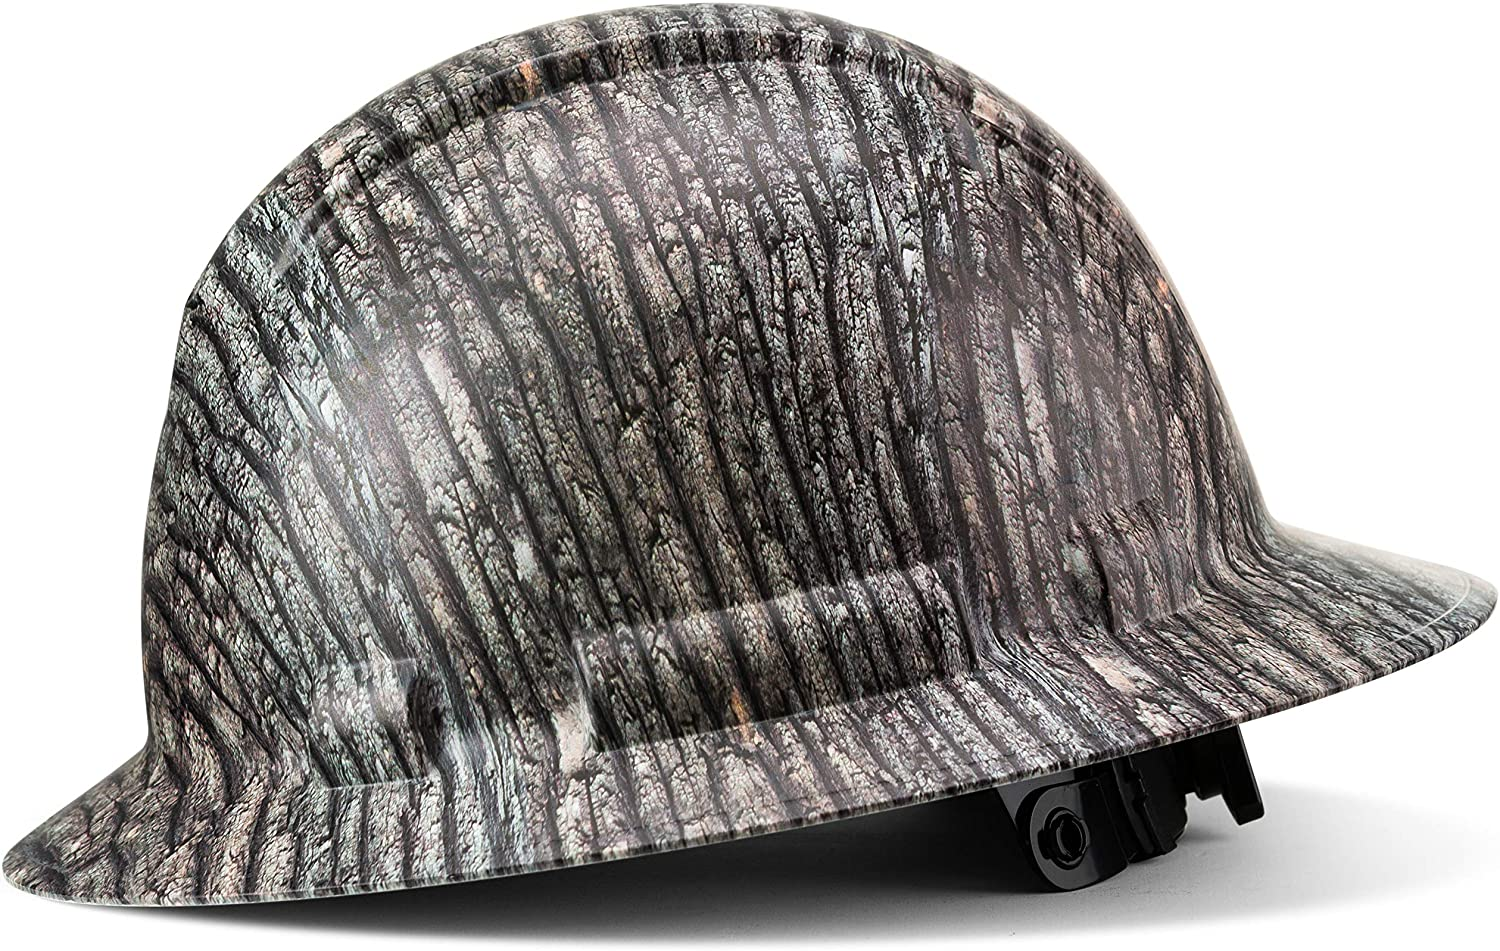 Full Brim Hard Hat, Custom Tree Bark Camo Design Safety Helmet, With 4 Point Suspension, Flag Decal Included, by Acerpal